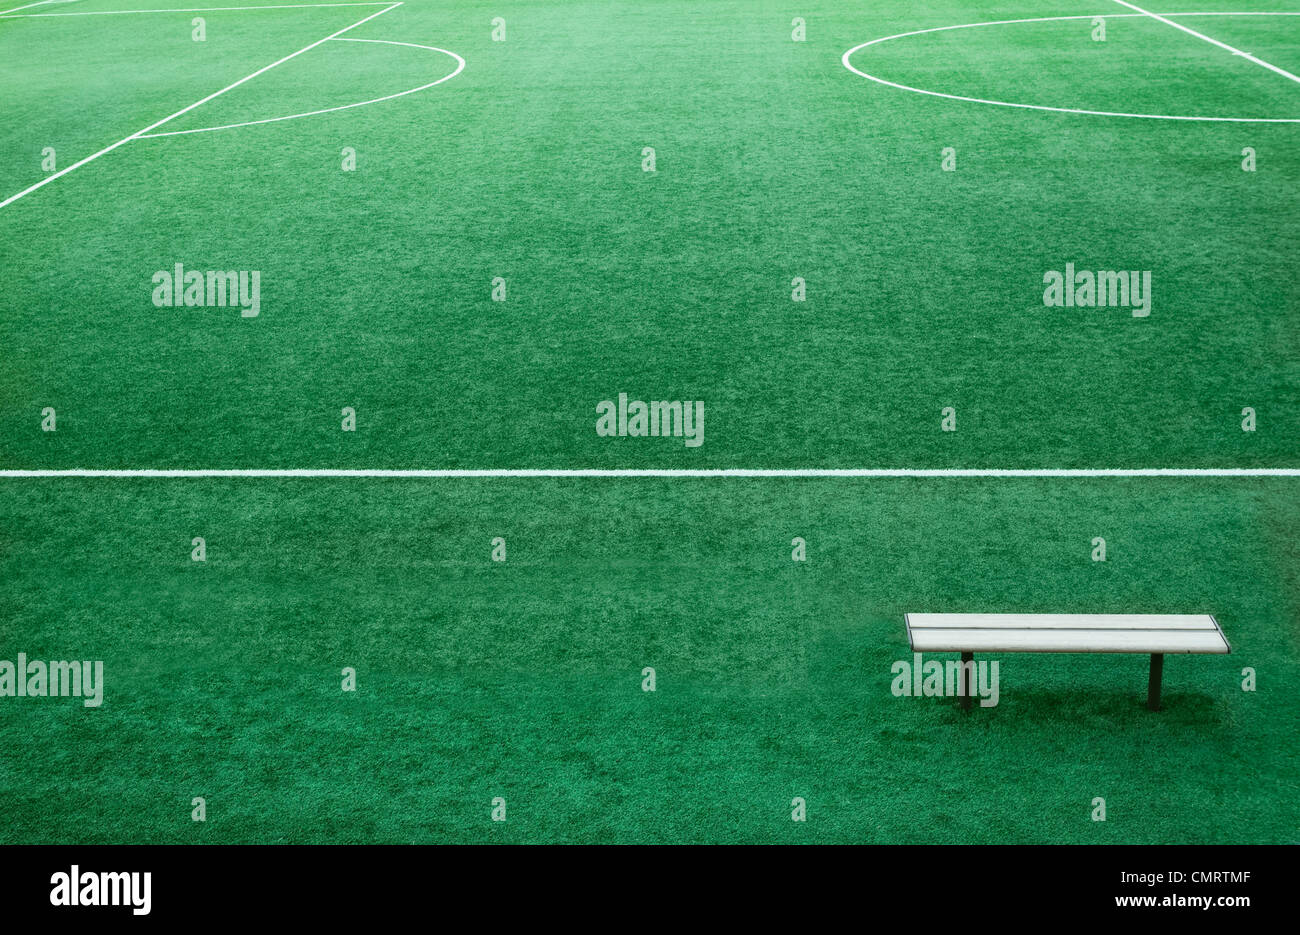 Bench on football ground - Stock Image